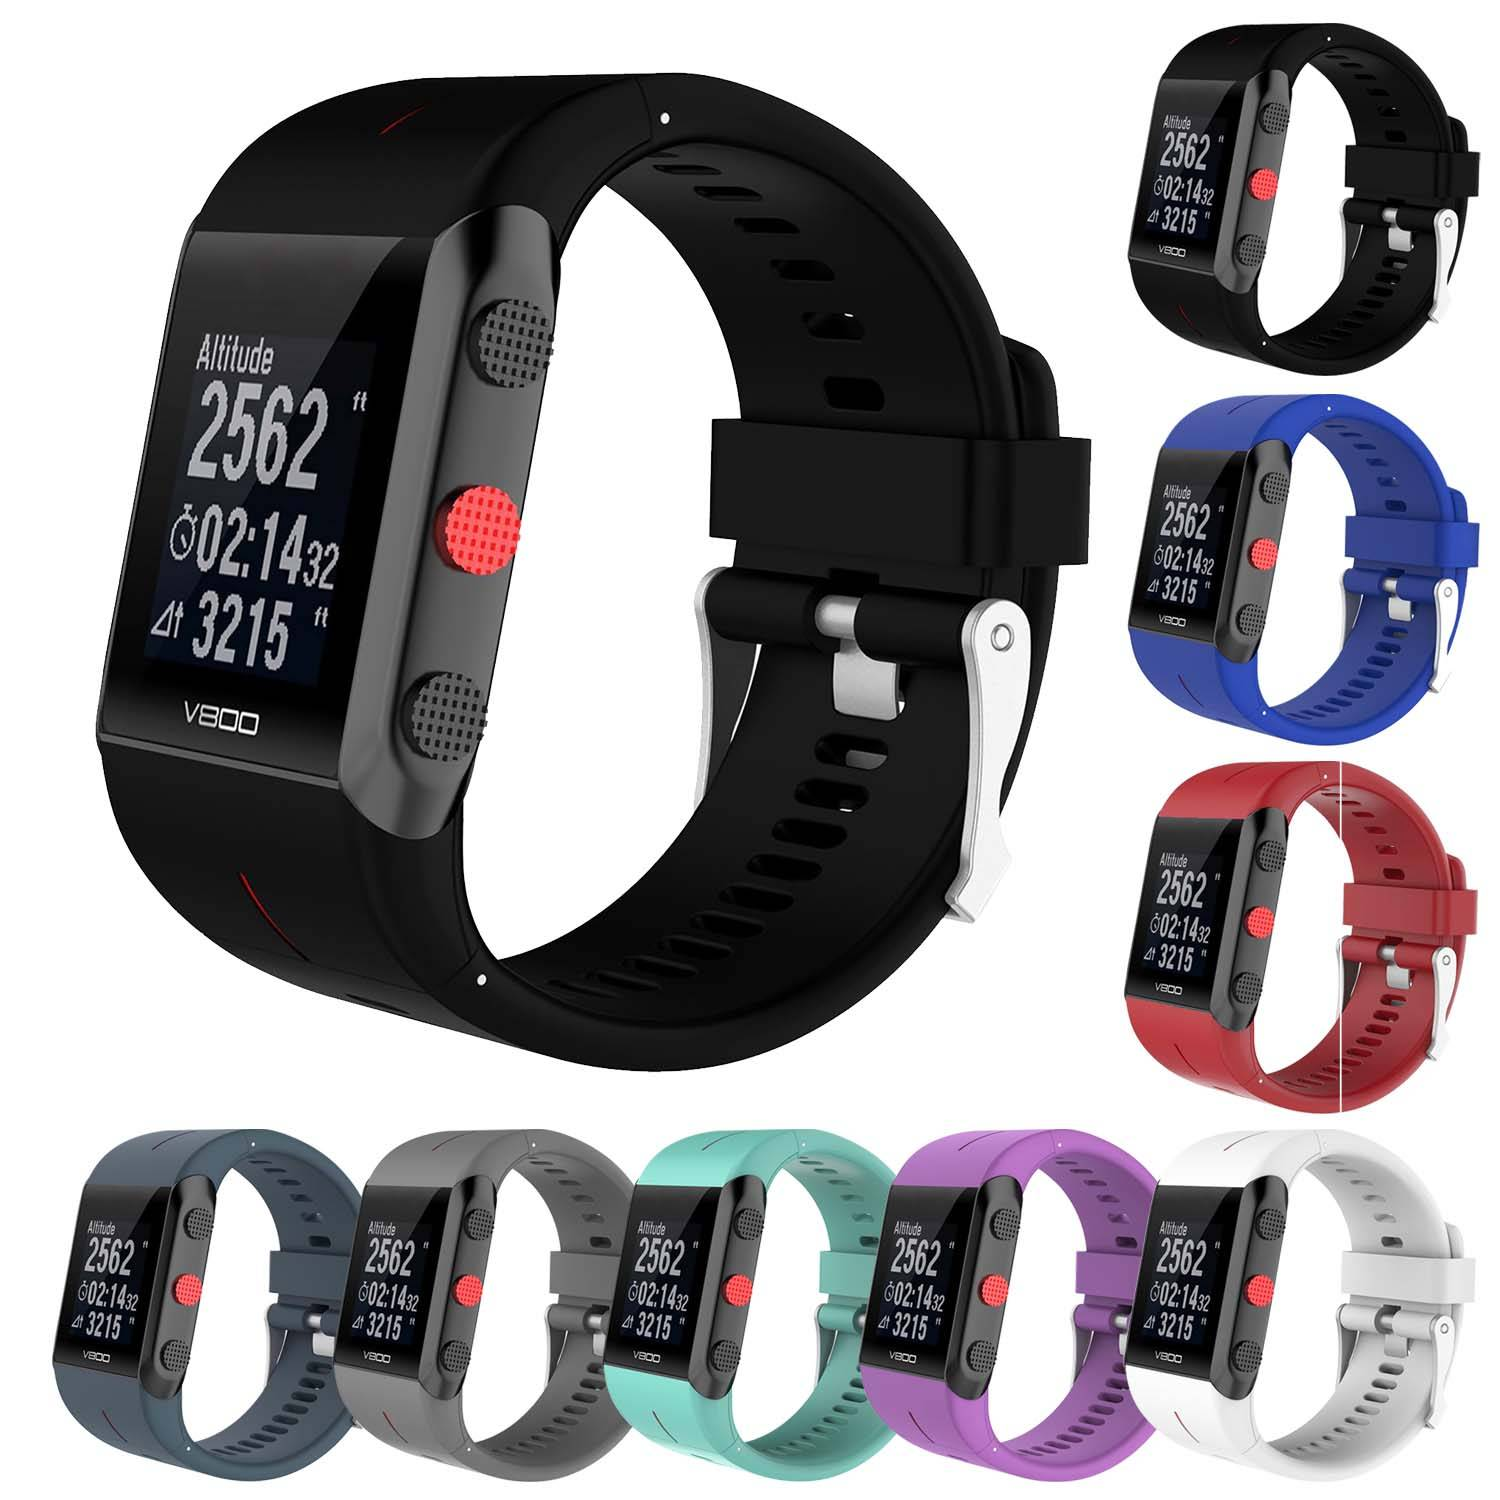 Strapsco Replacement Band for Polar v800 GPS Sports Watch